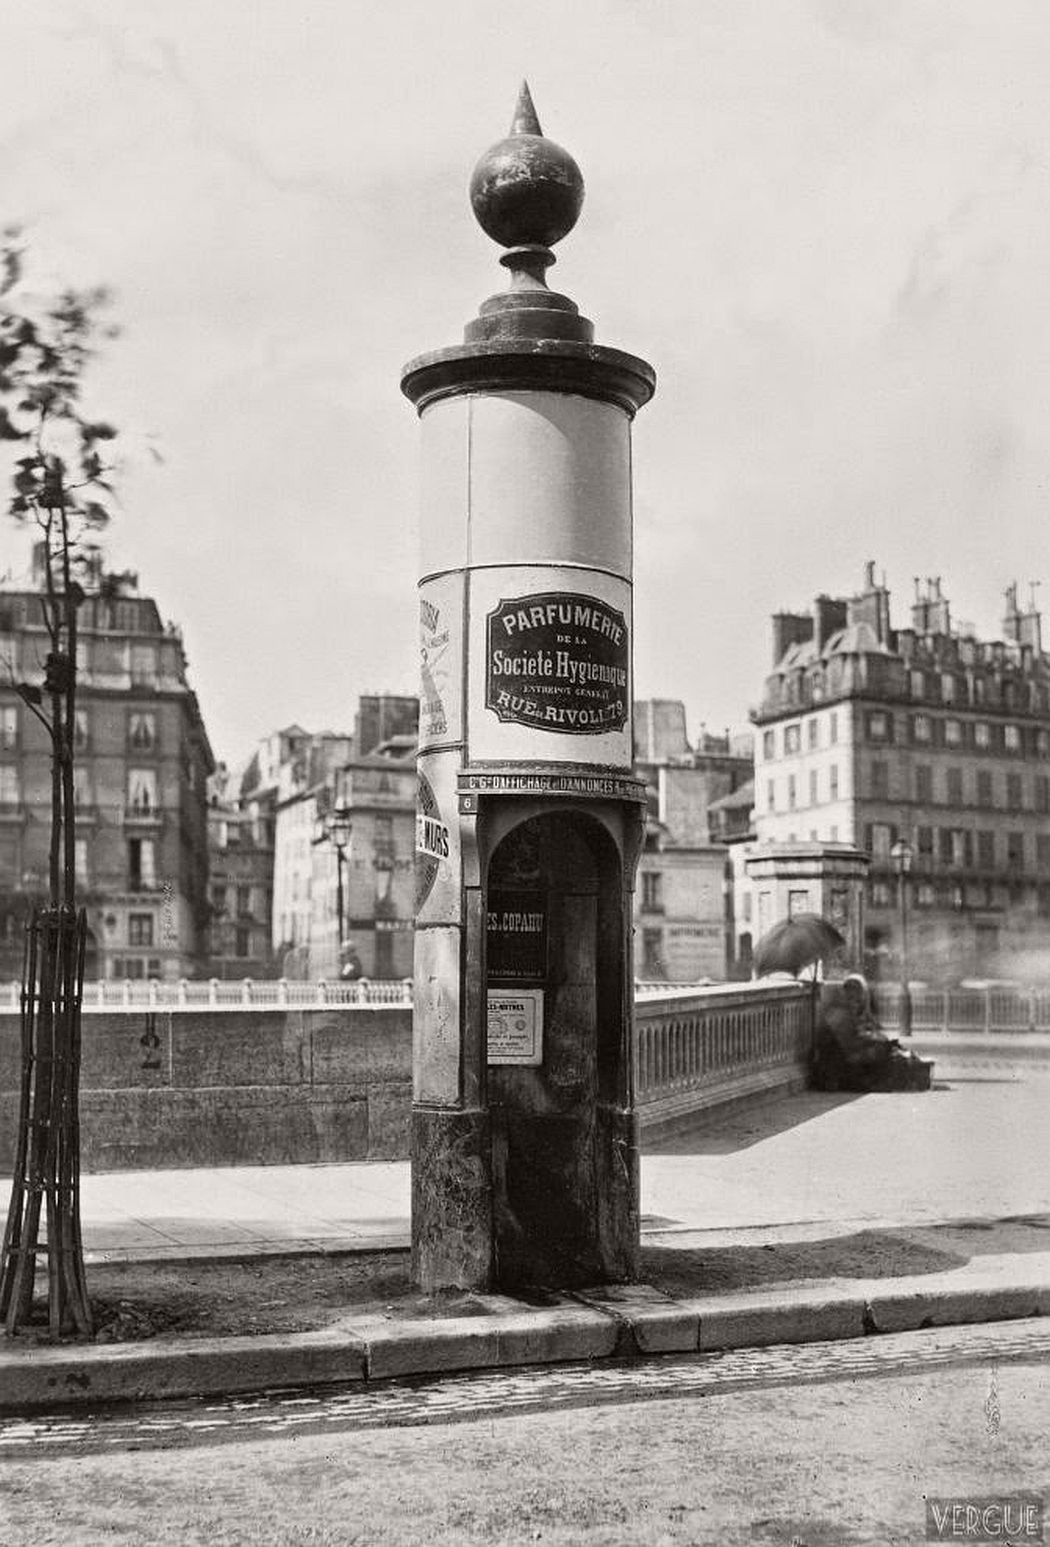 vintage-public-urinals-in-paris-by-charles-marville-19th-century-04